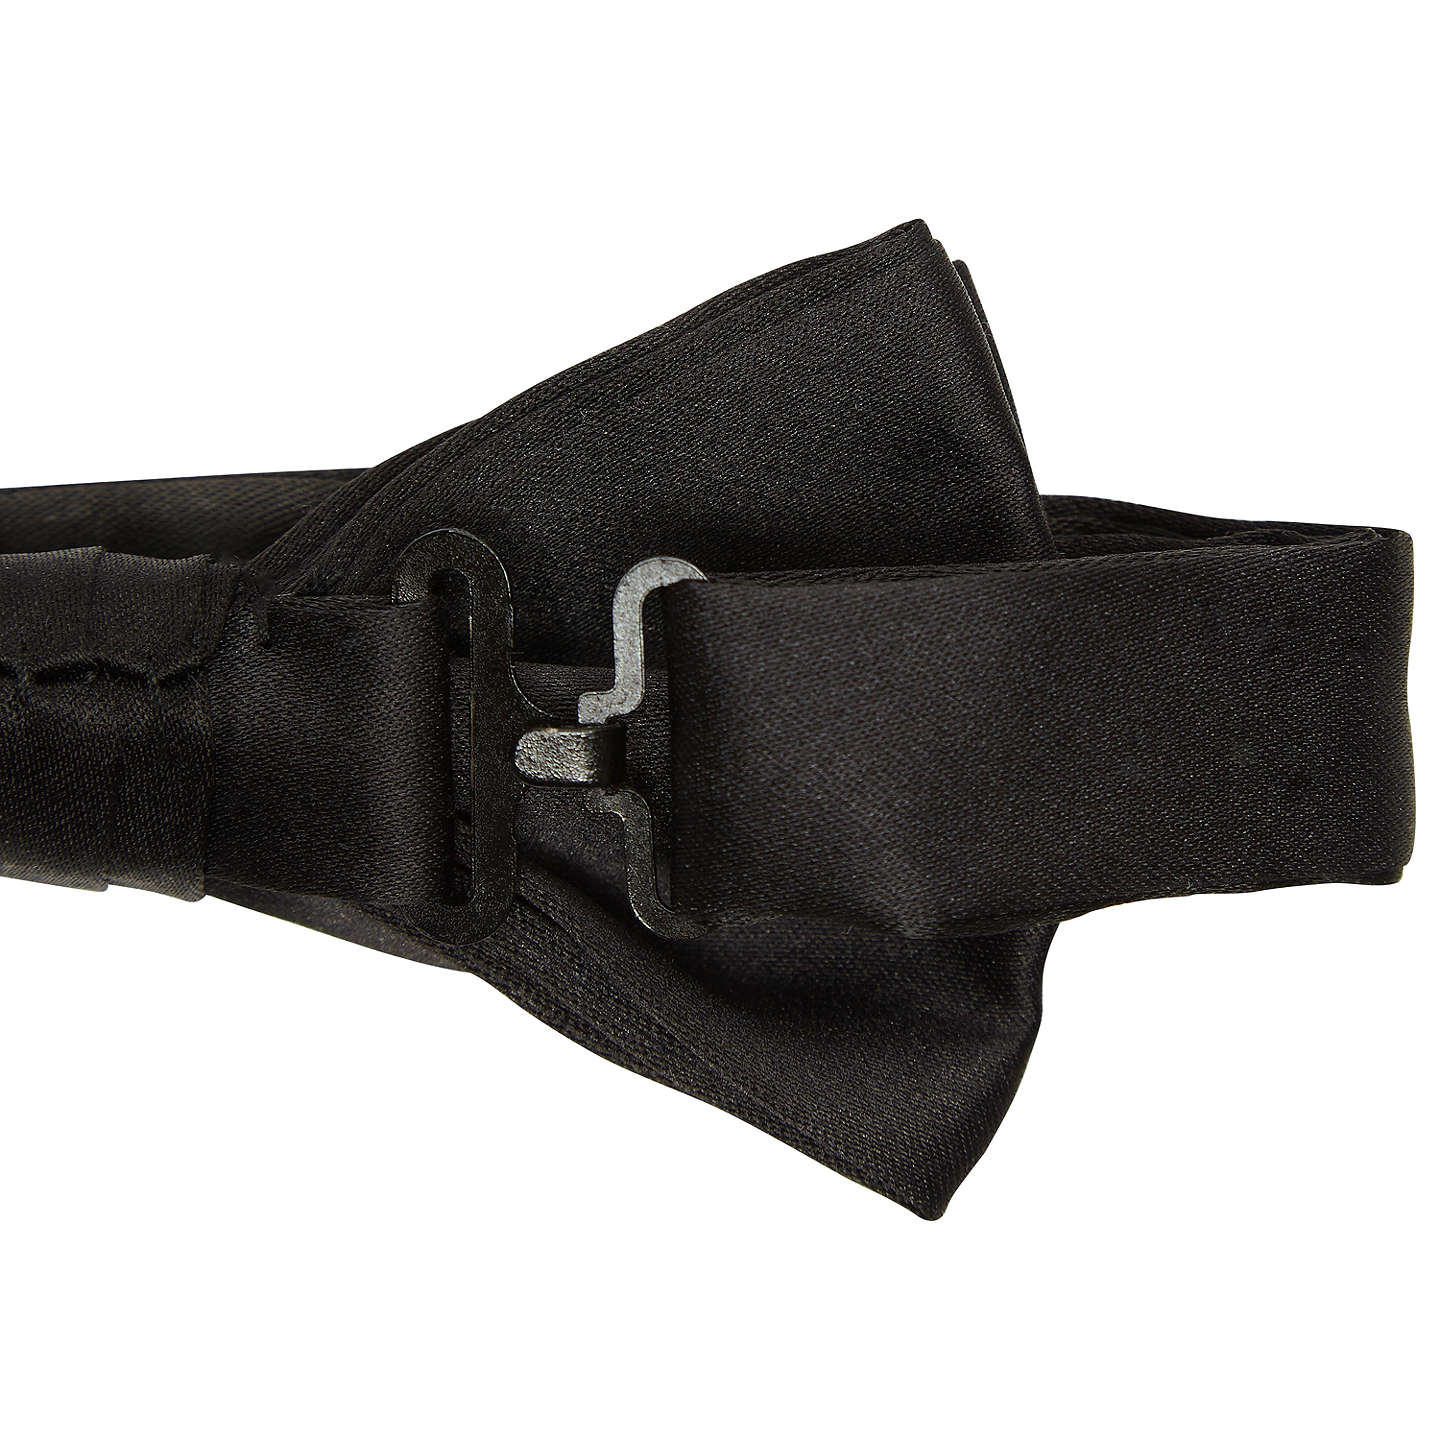 BuyJohn Lewis Silk Ready Tied Bow Tie, Black, One size Online at johnlewis.com